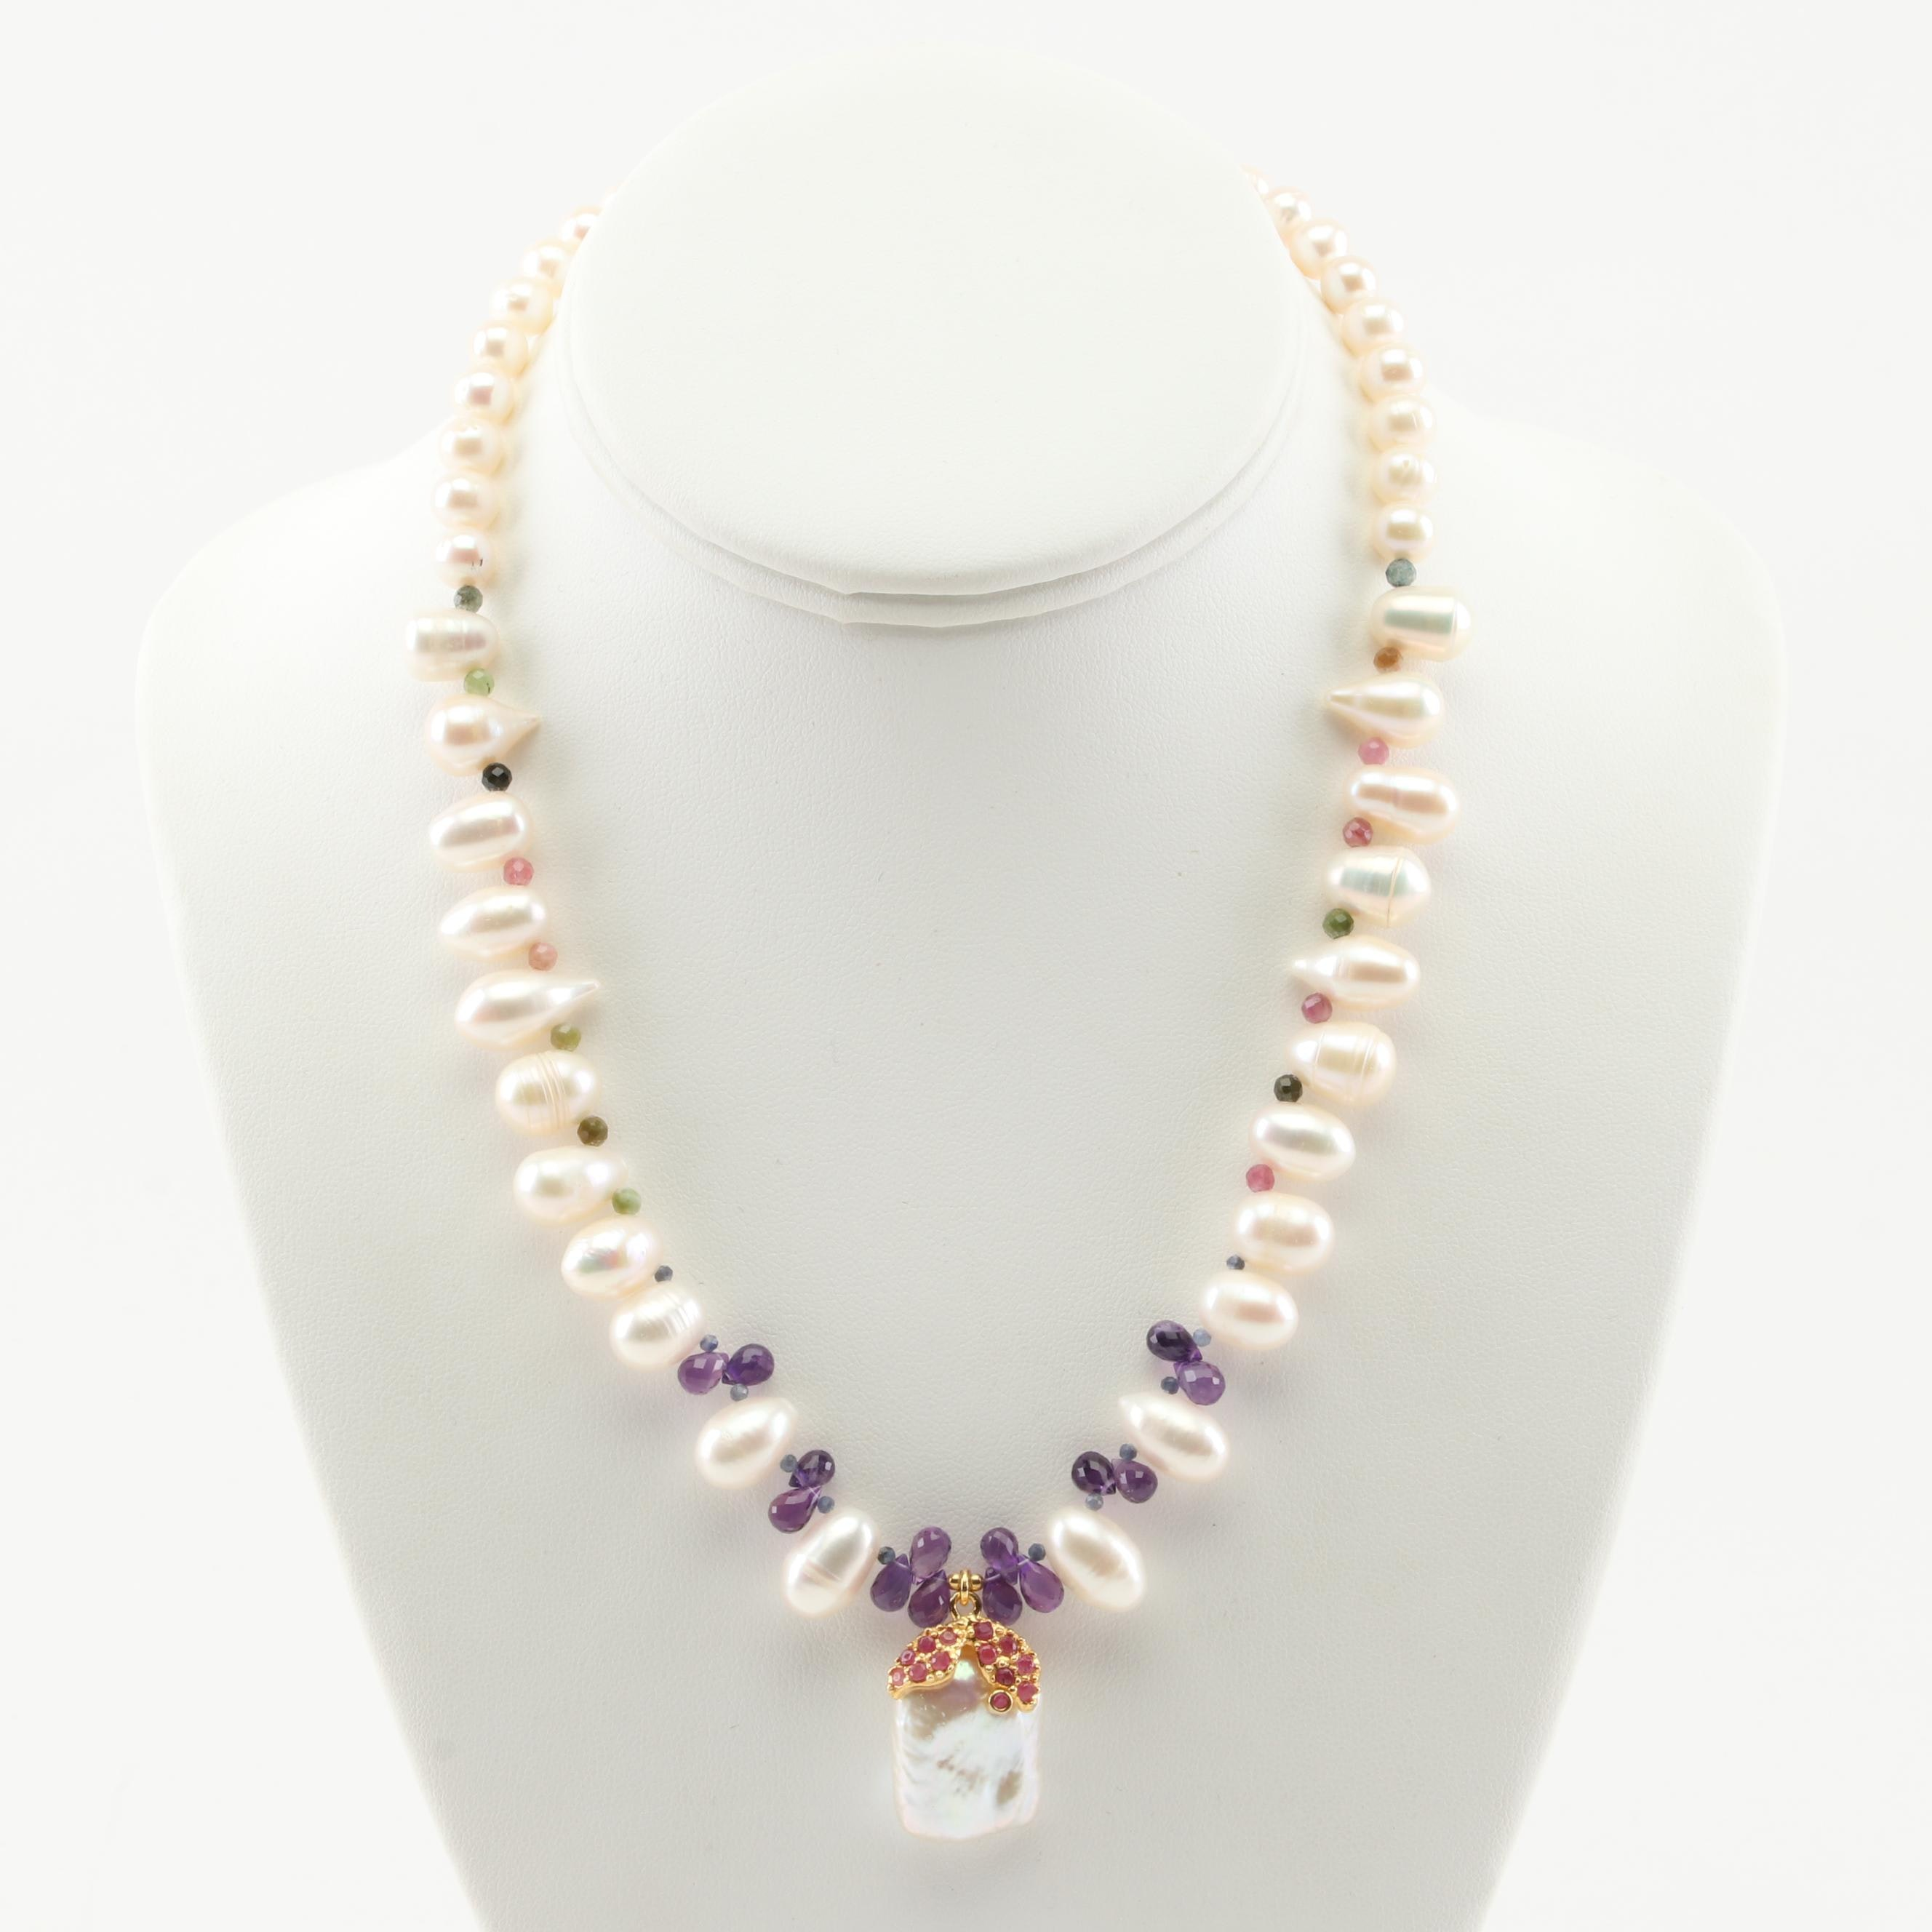 Sterling Silver Freshwater Pearl, Amethyst, Ruby, and Tourmaline Necklace